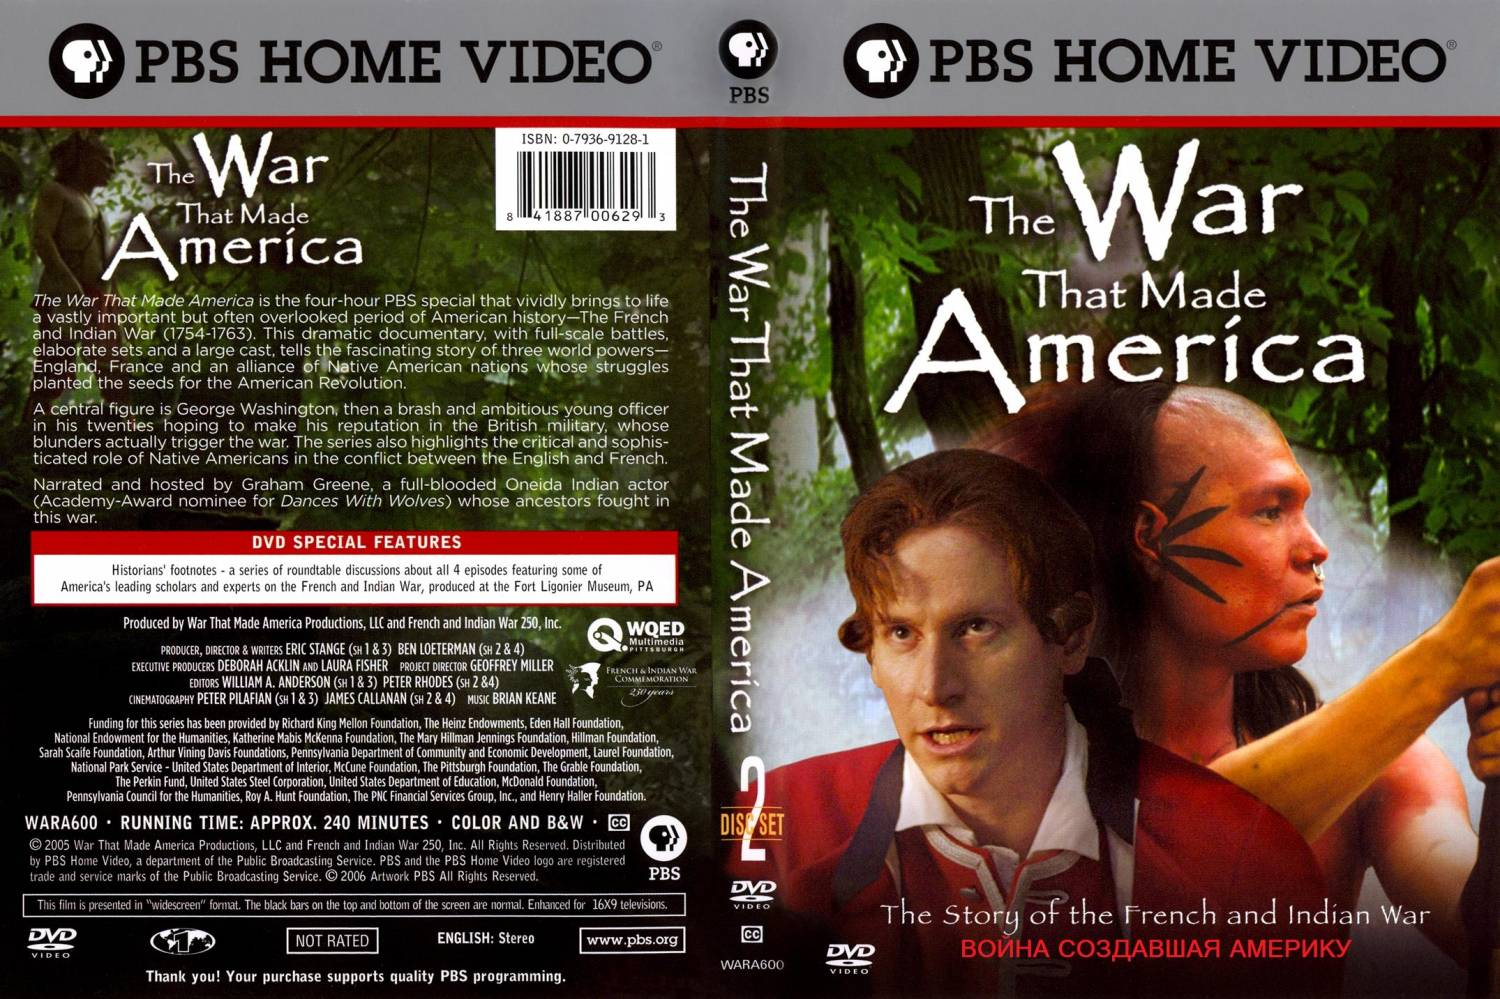 the war that made america The war that made america the french & indian war 7 years war part 4.